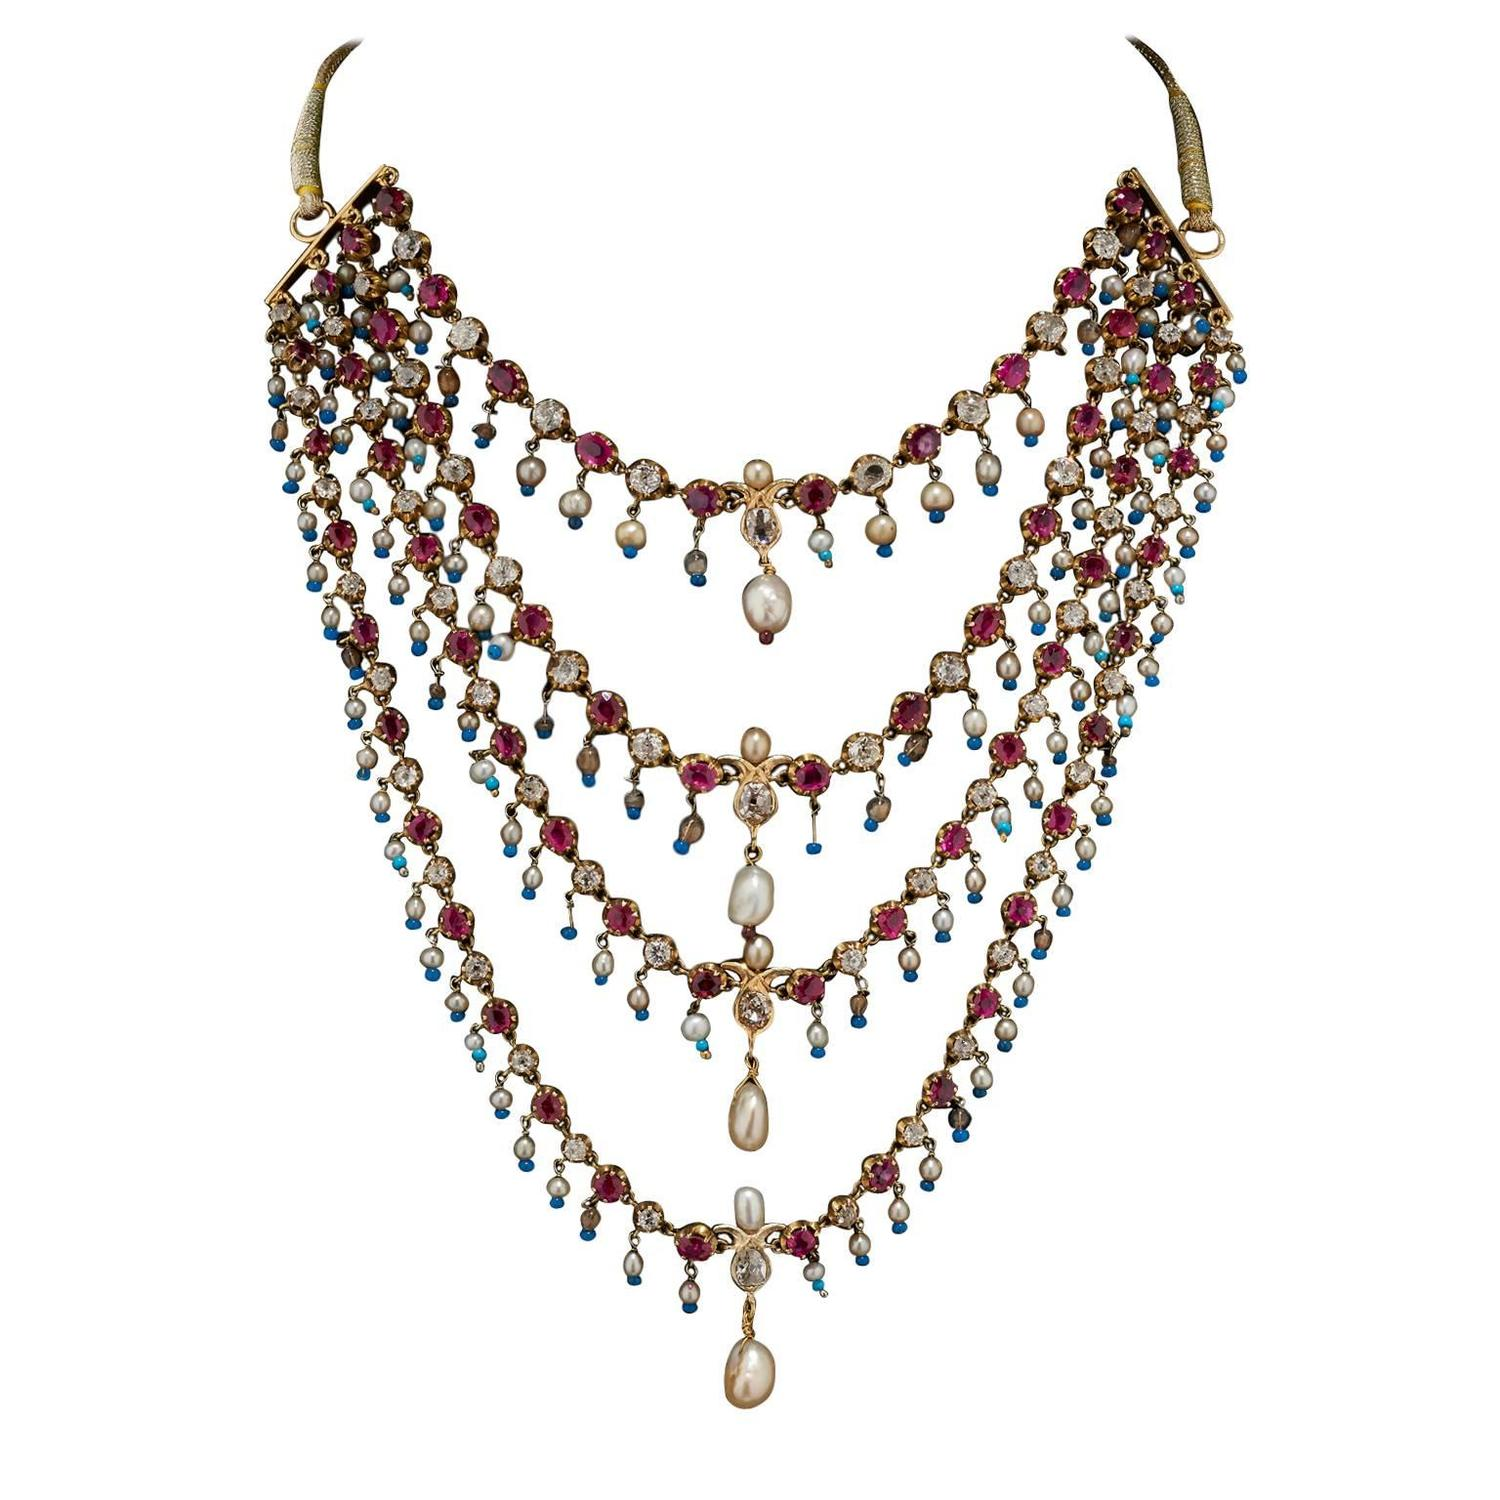 south india necklace vbj style ruby jewels antique indian